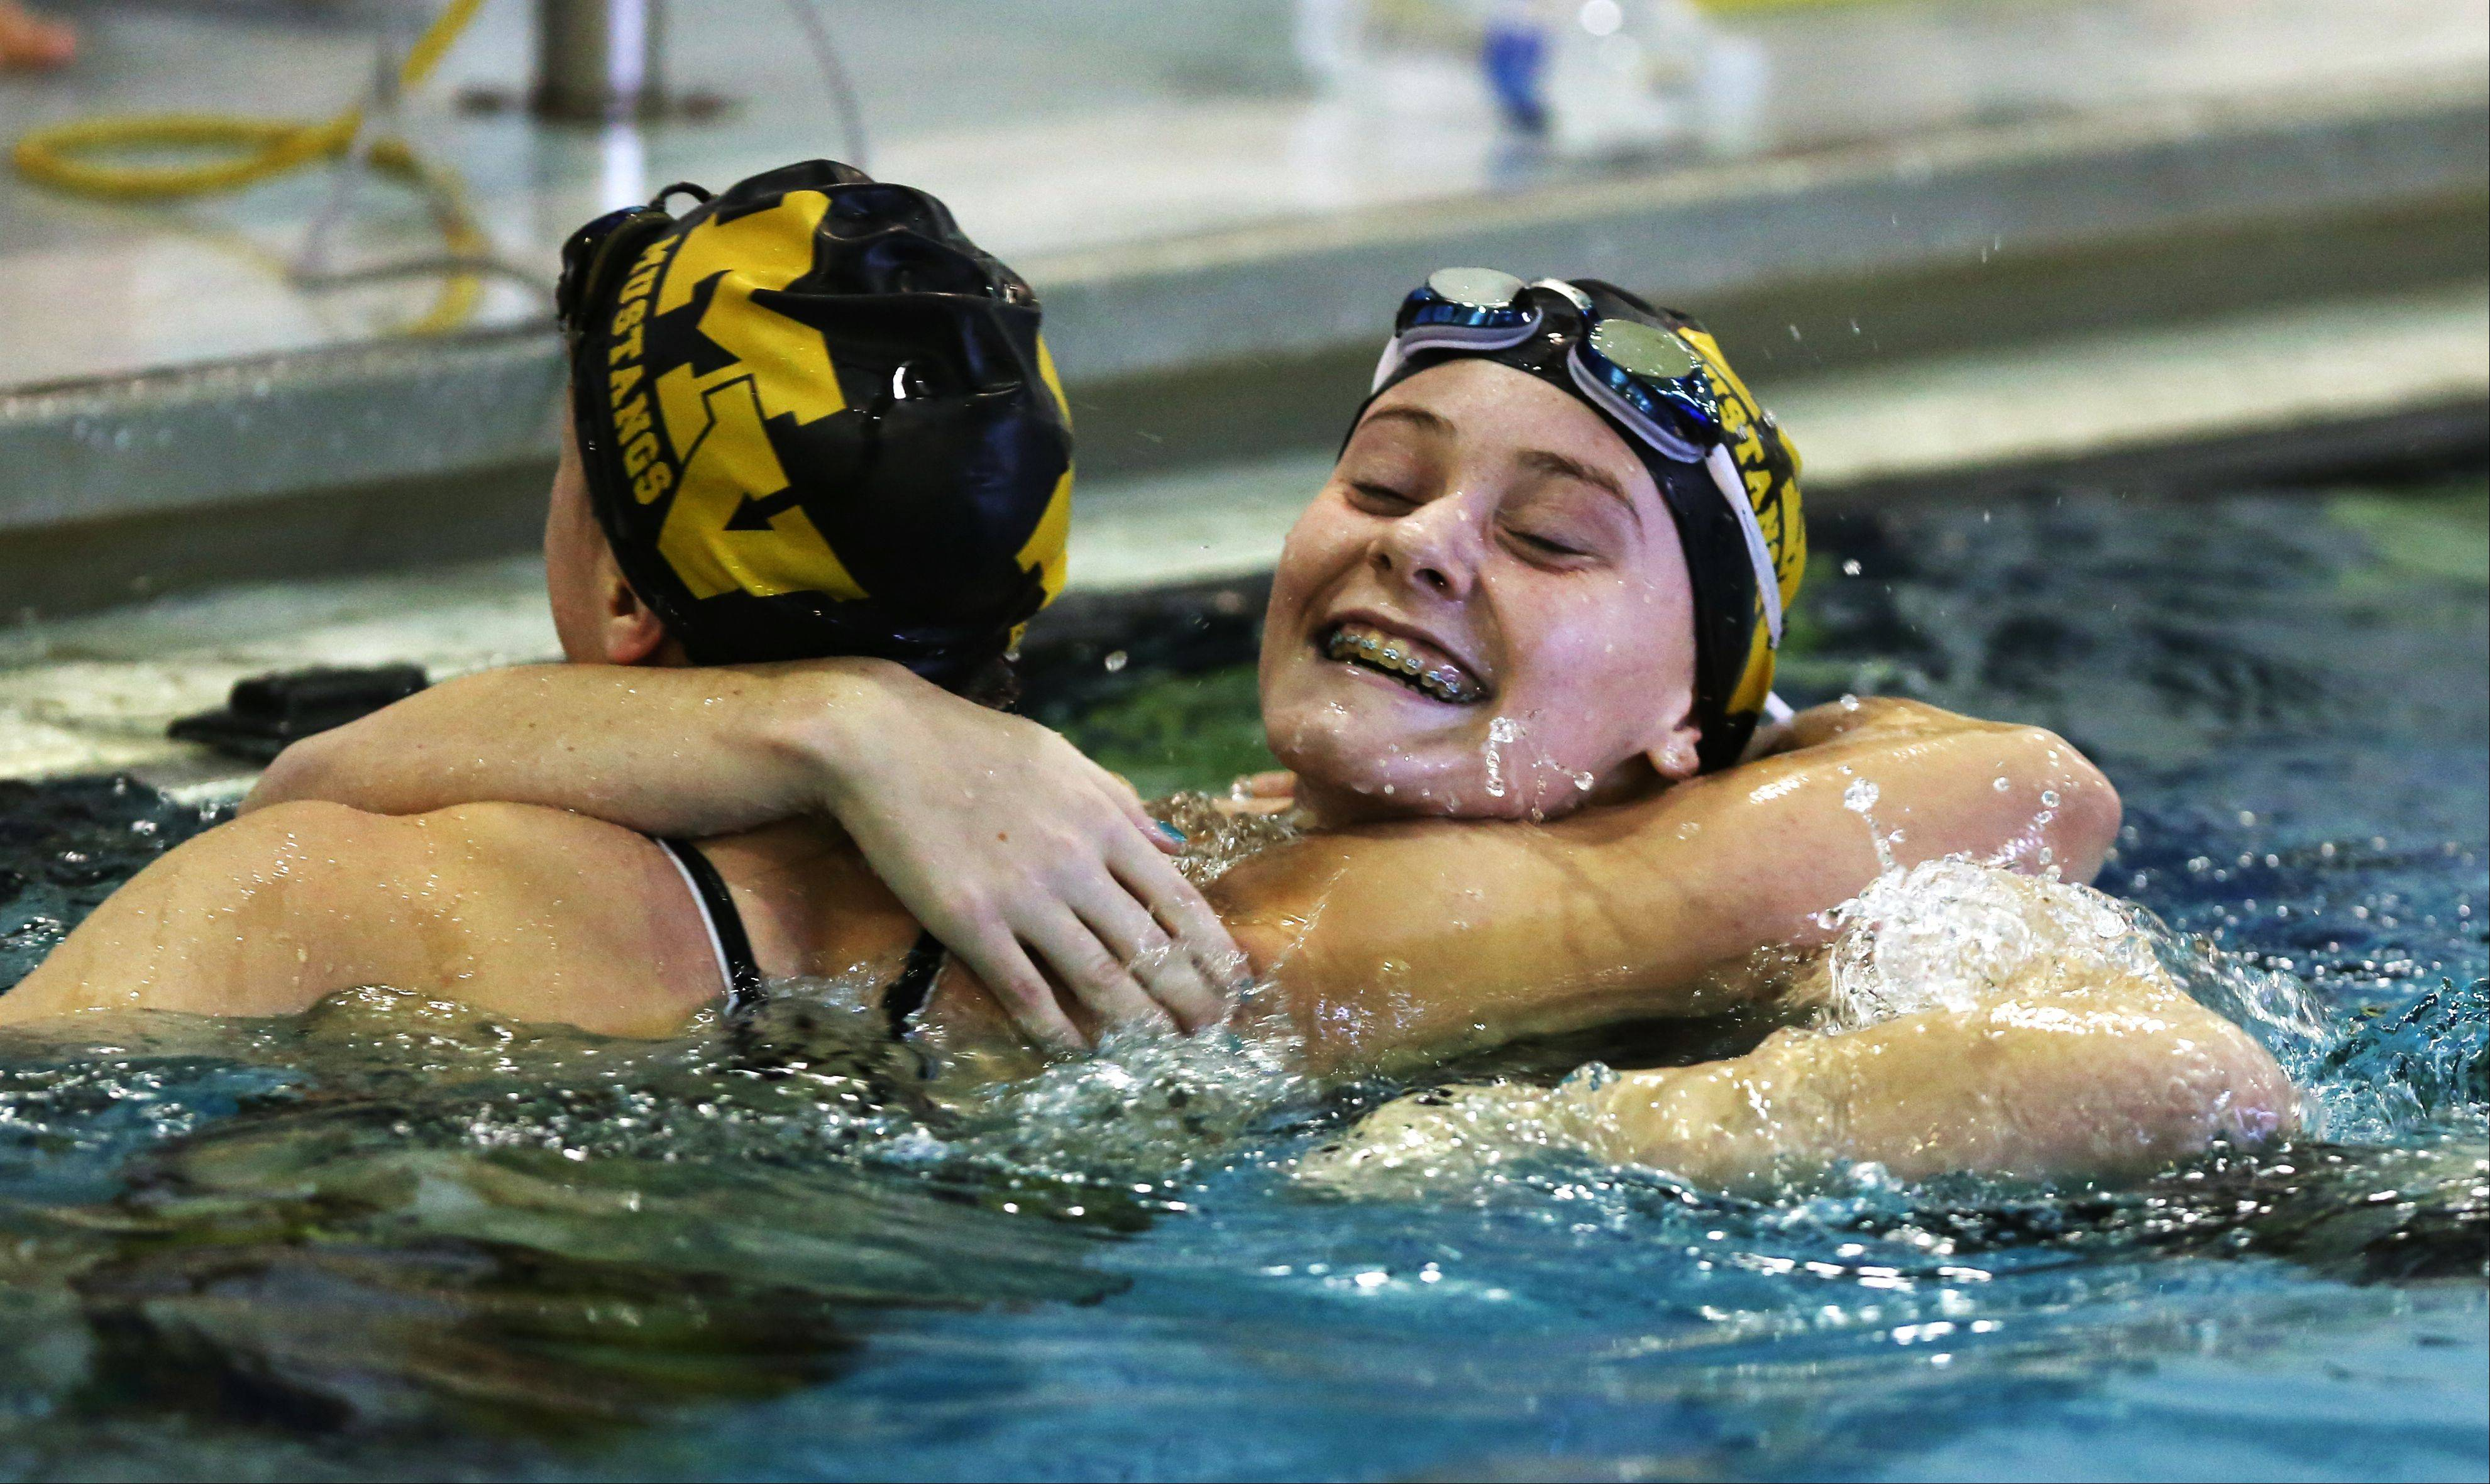 Metea Valley's Amanda Burson, right, hugs teammate Madie Sandberg, left, after winning the 50-yard freestyle during Saturday's Wildcat Invite swim meet in West Chicago.